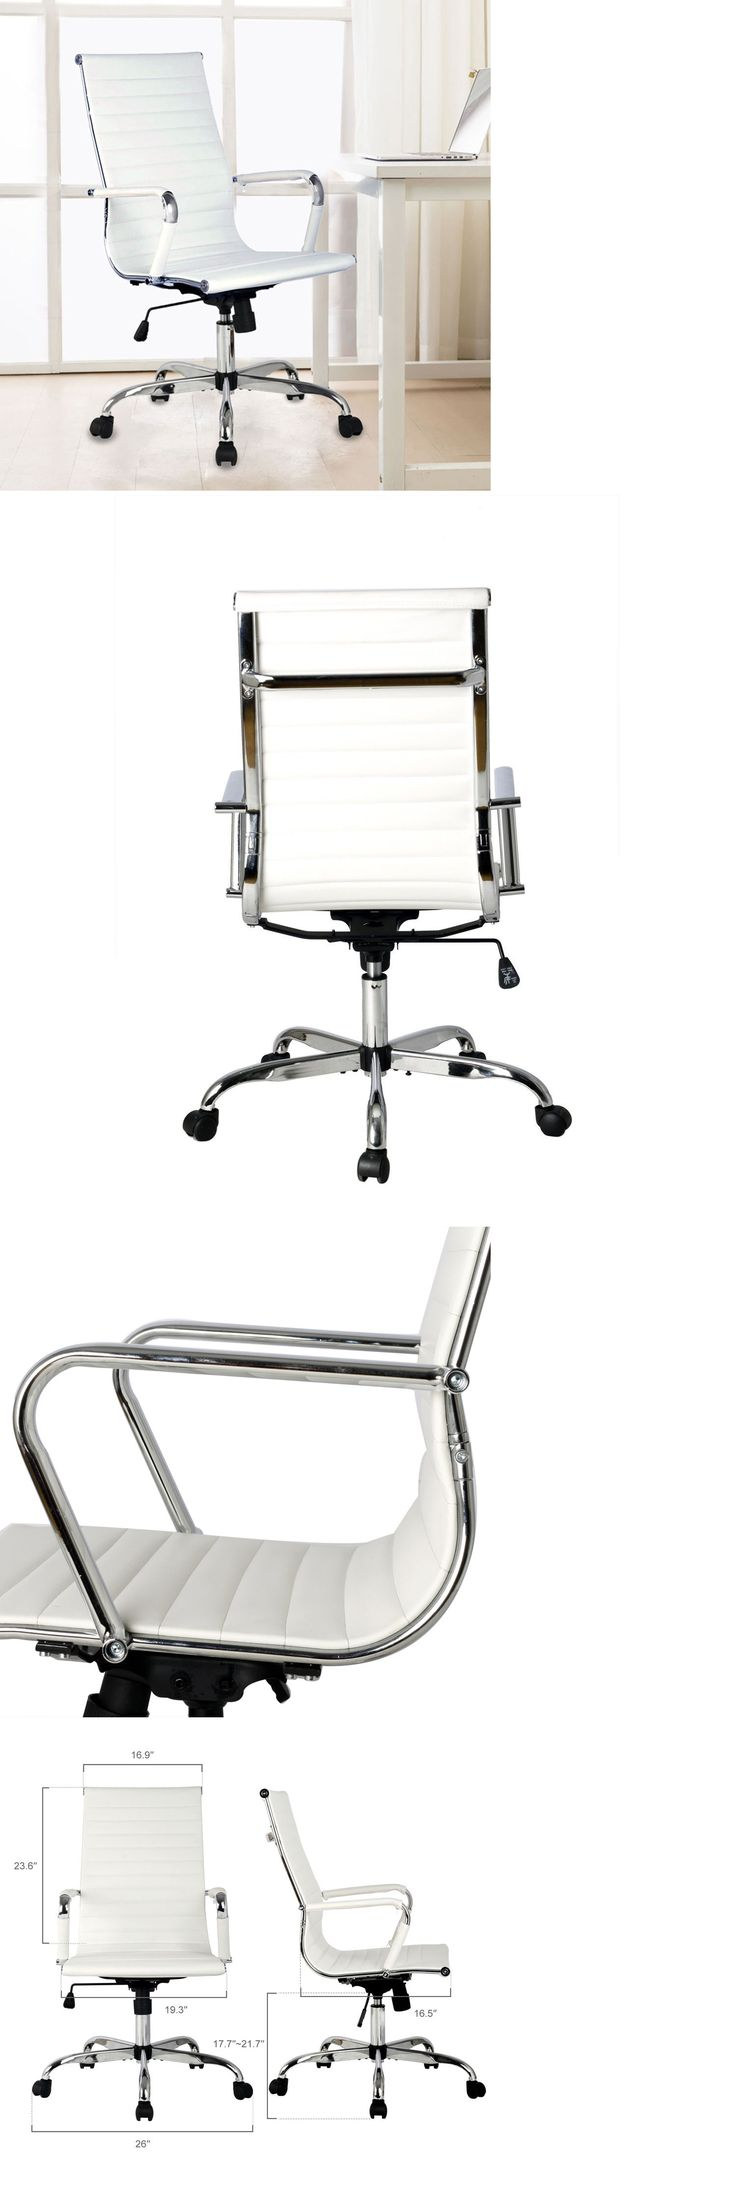 Office Furniture: Ergonomic Office Chair Pu Leather High Back Executive Computer Desk Home White -> BUY IT NOW ONLY: $65.99 on eBay!